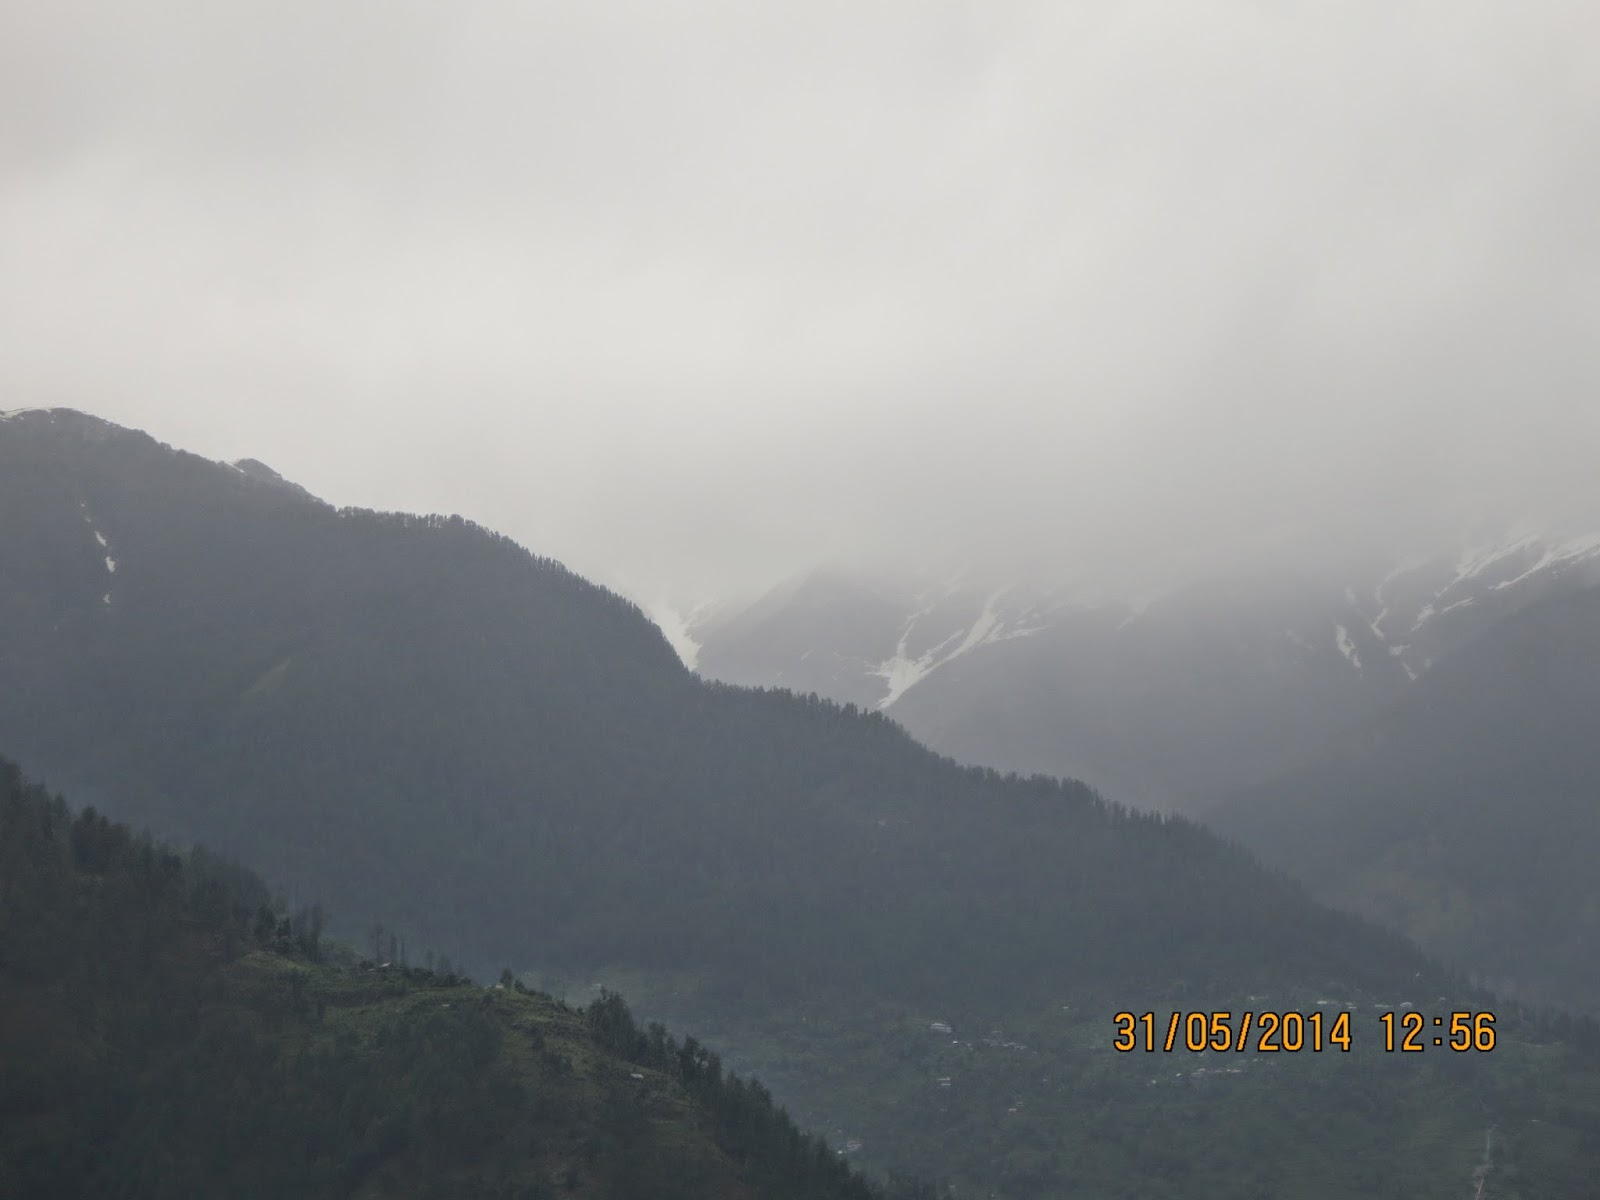 Manali - A lazy foggy day